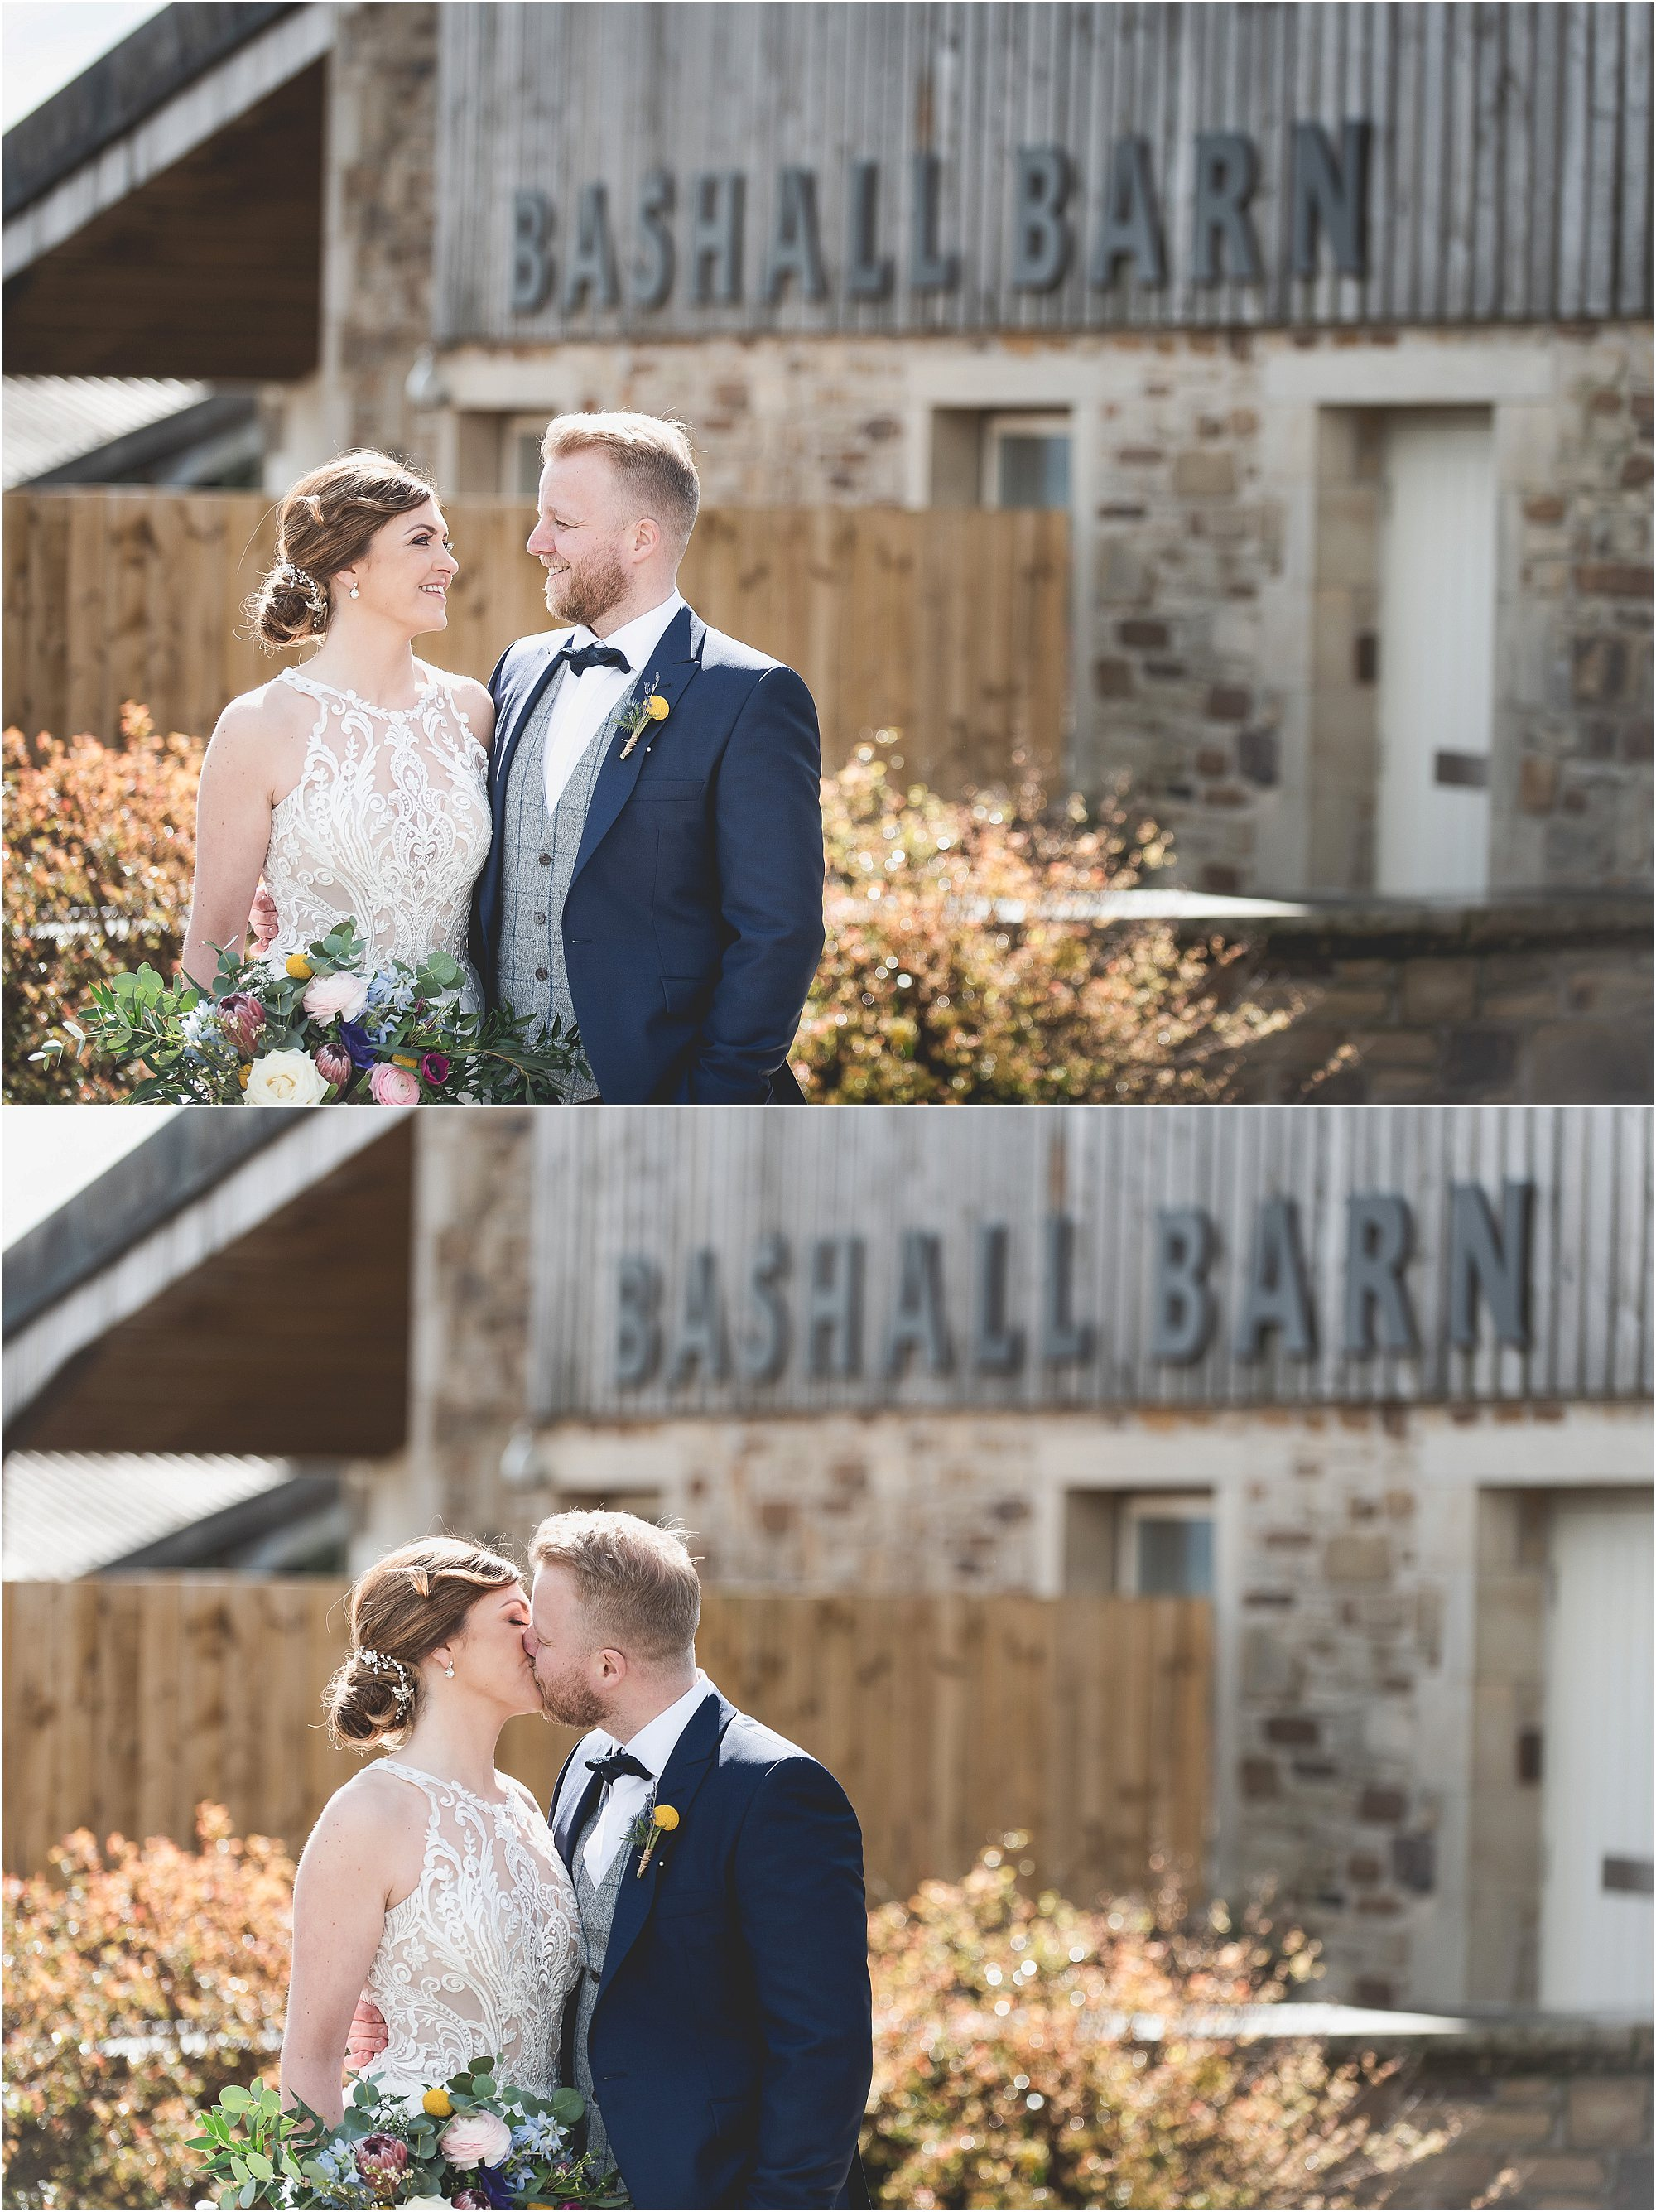 Couple sharing a moment at Bashall Barn